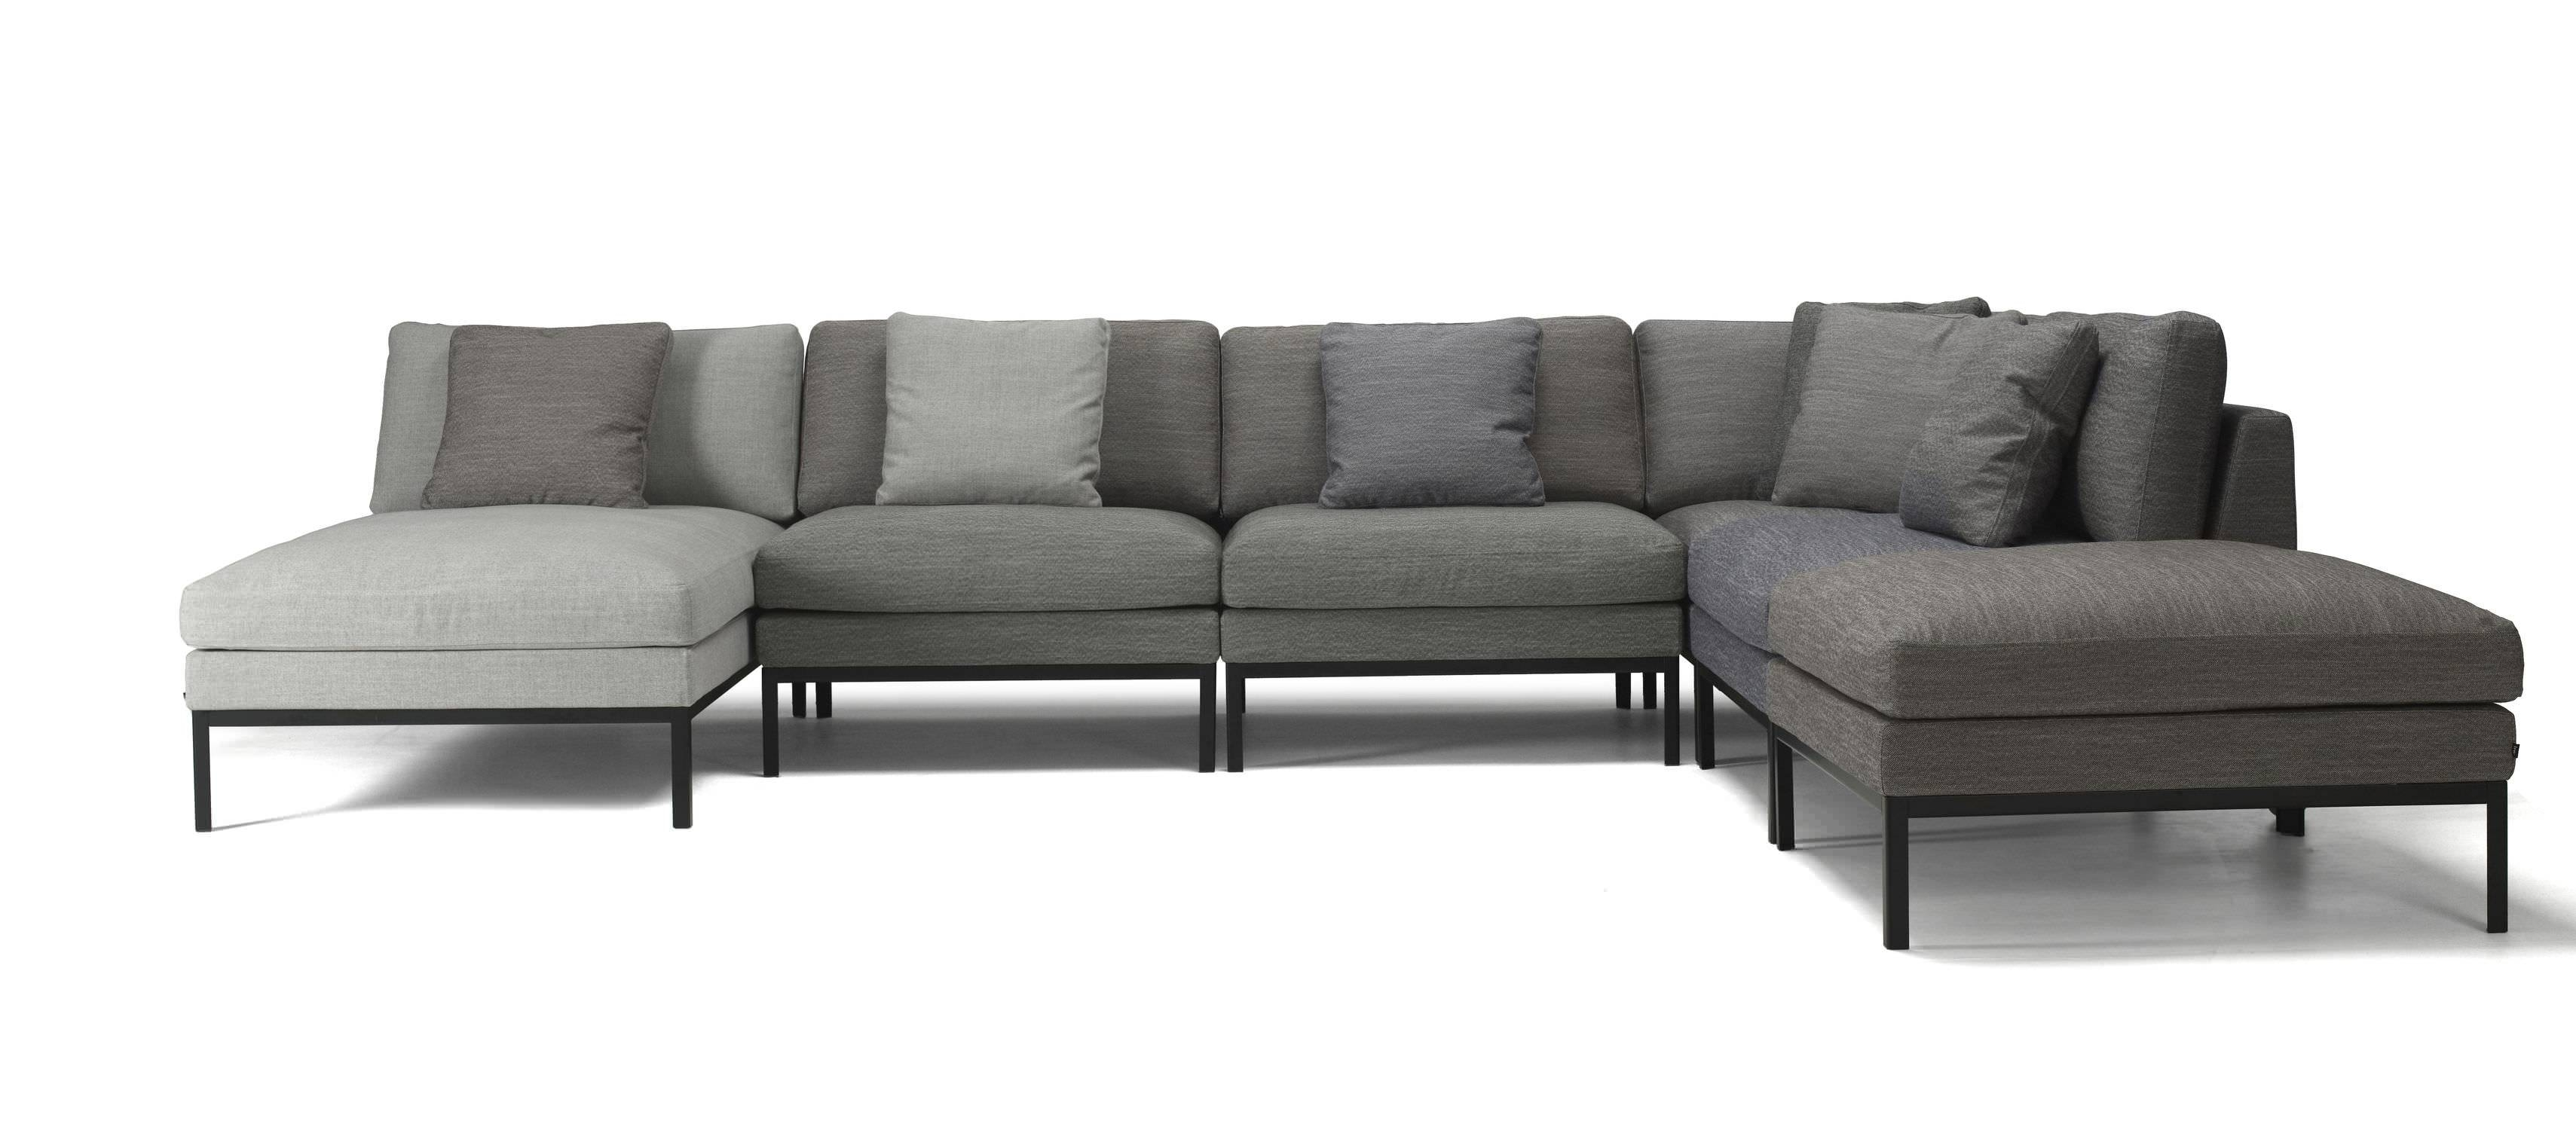 Modular Sofa / Corner / Contemporary / Fabric - Joinemma regarding Contemporary Fabric Sofas (Image 25 of 30)